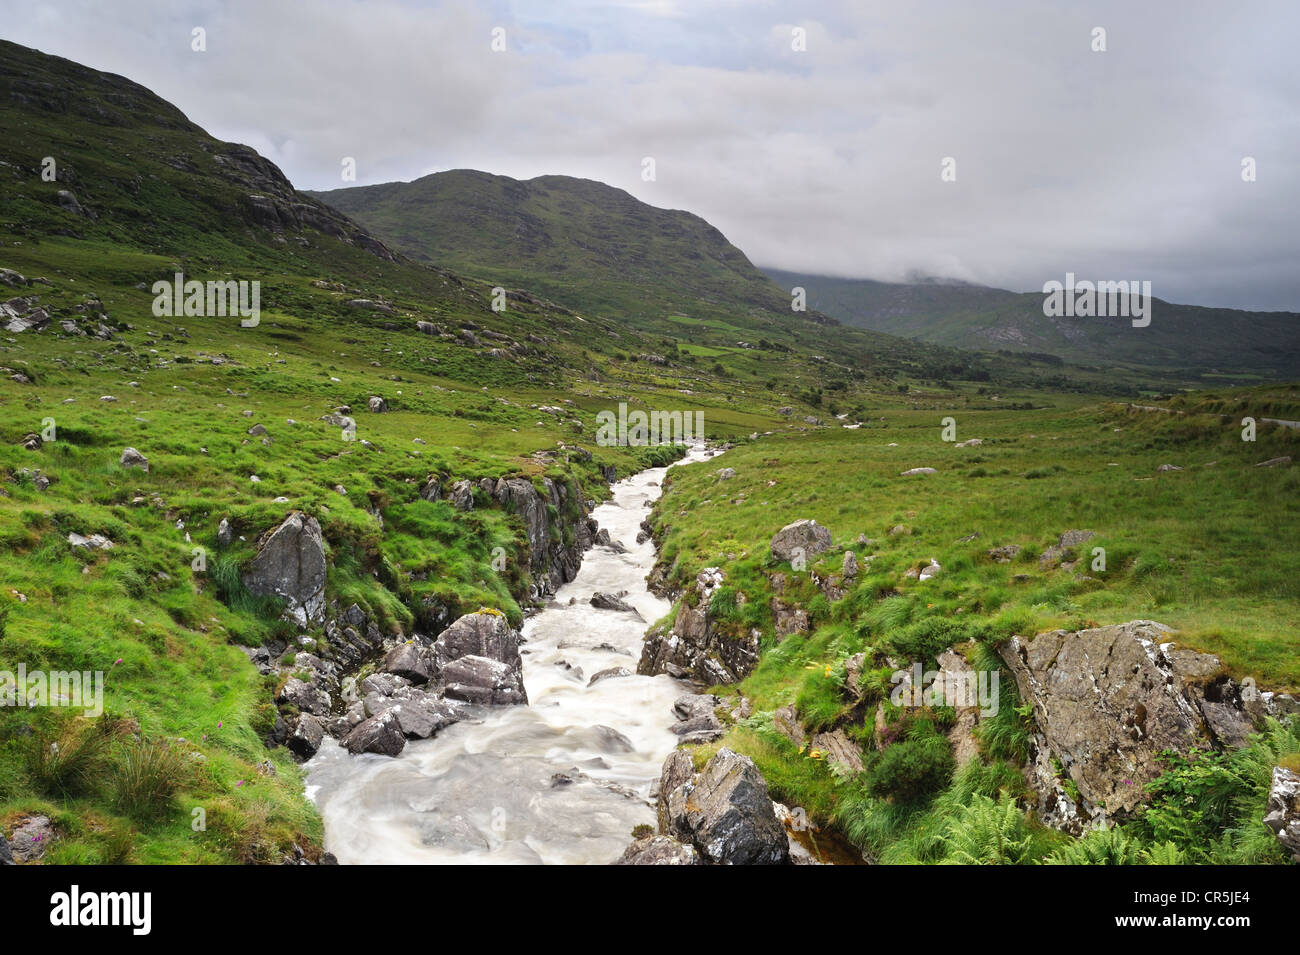 Mountain stream, Healy Pass, West Cork, Ireland - Stock Image